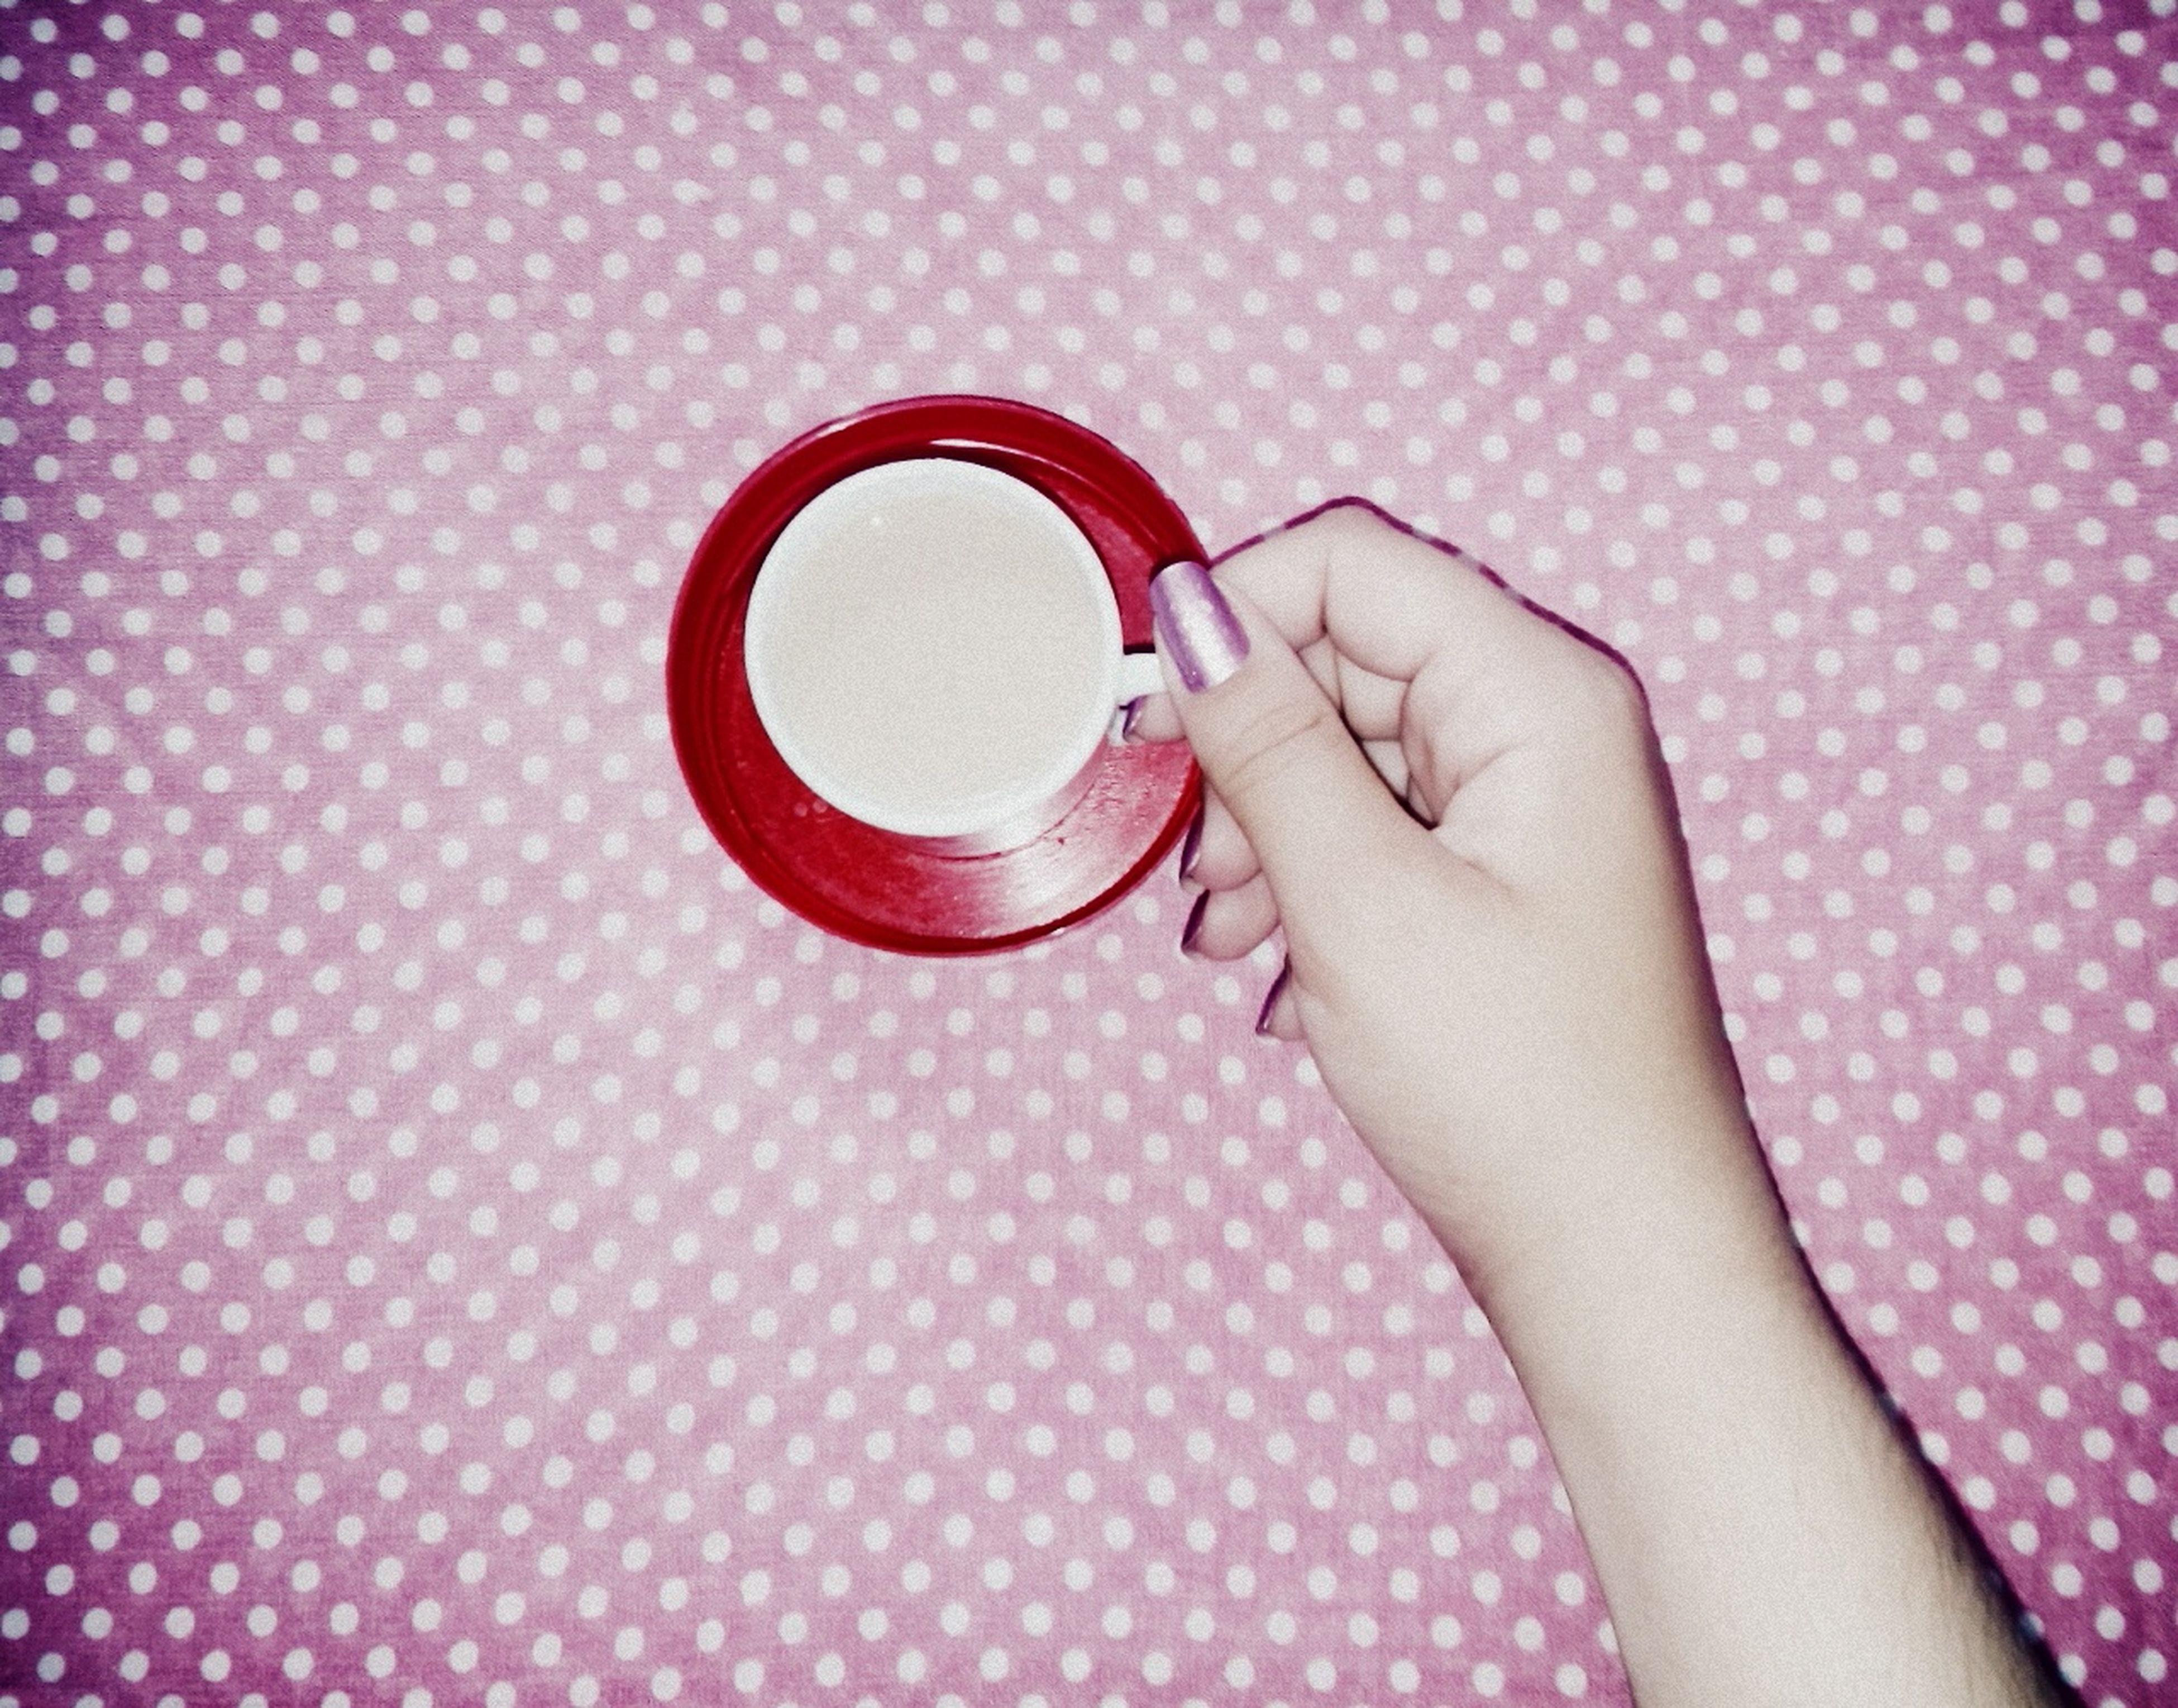 indoors, person, holding, lifestyles, childhood, part of, refreshment, leisure activity, close-up, human finger, high angle view, innocence, drink, coffee cup, cropped, home interior